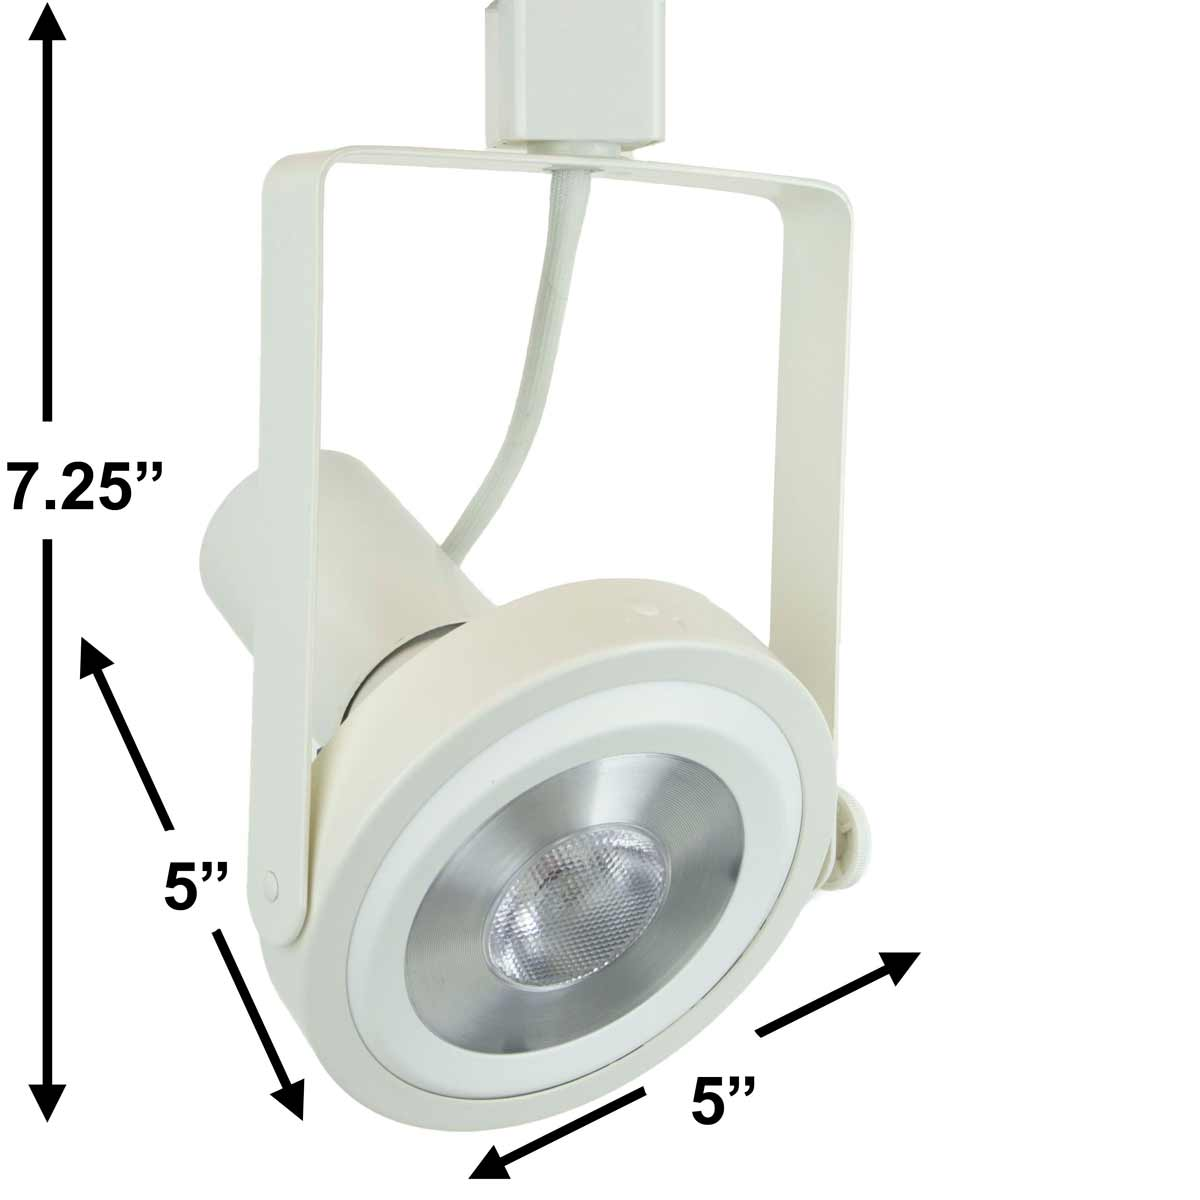 LED PAR38 Rear Loading Gimbal Ring Track Lighting Fixture 50006-L38-3K-WH